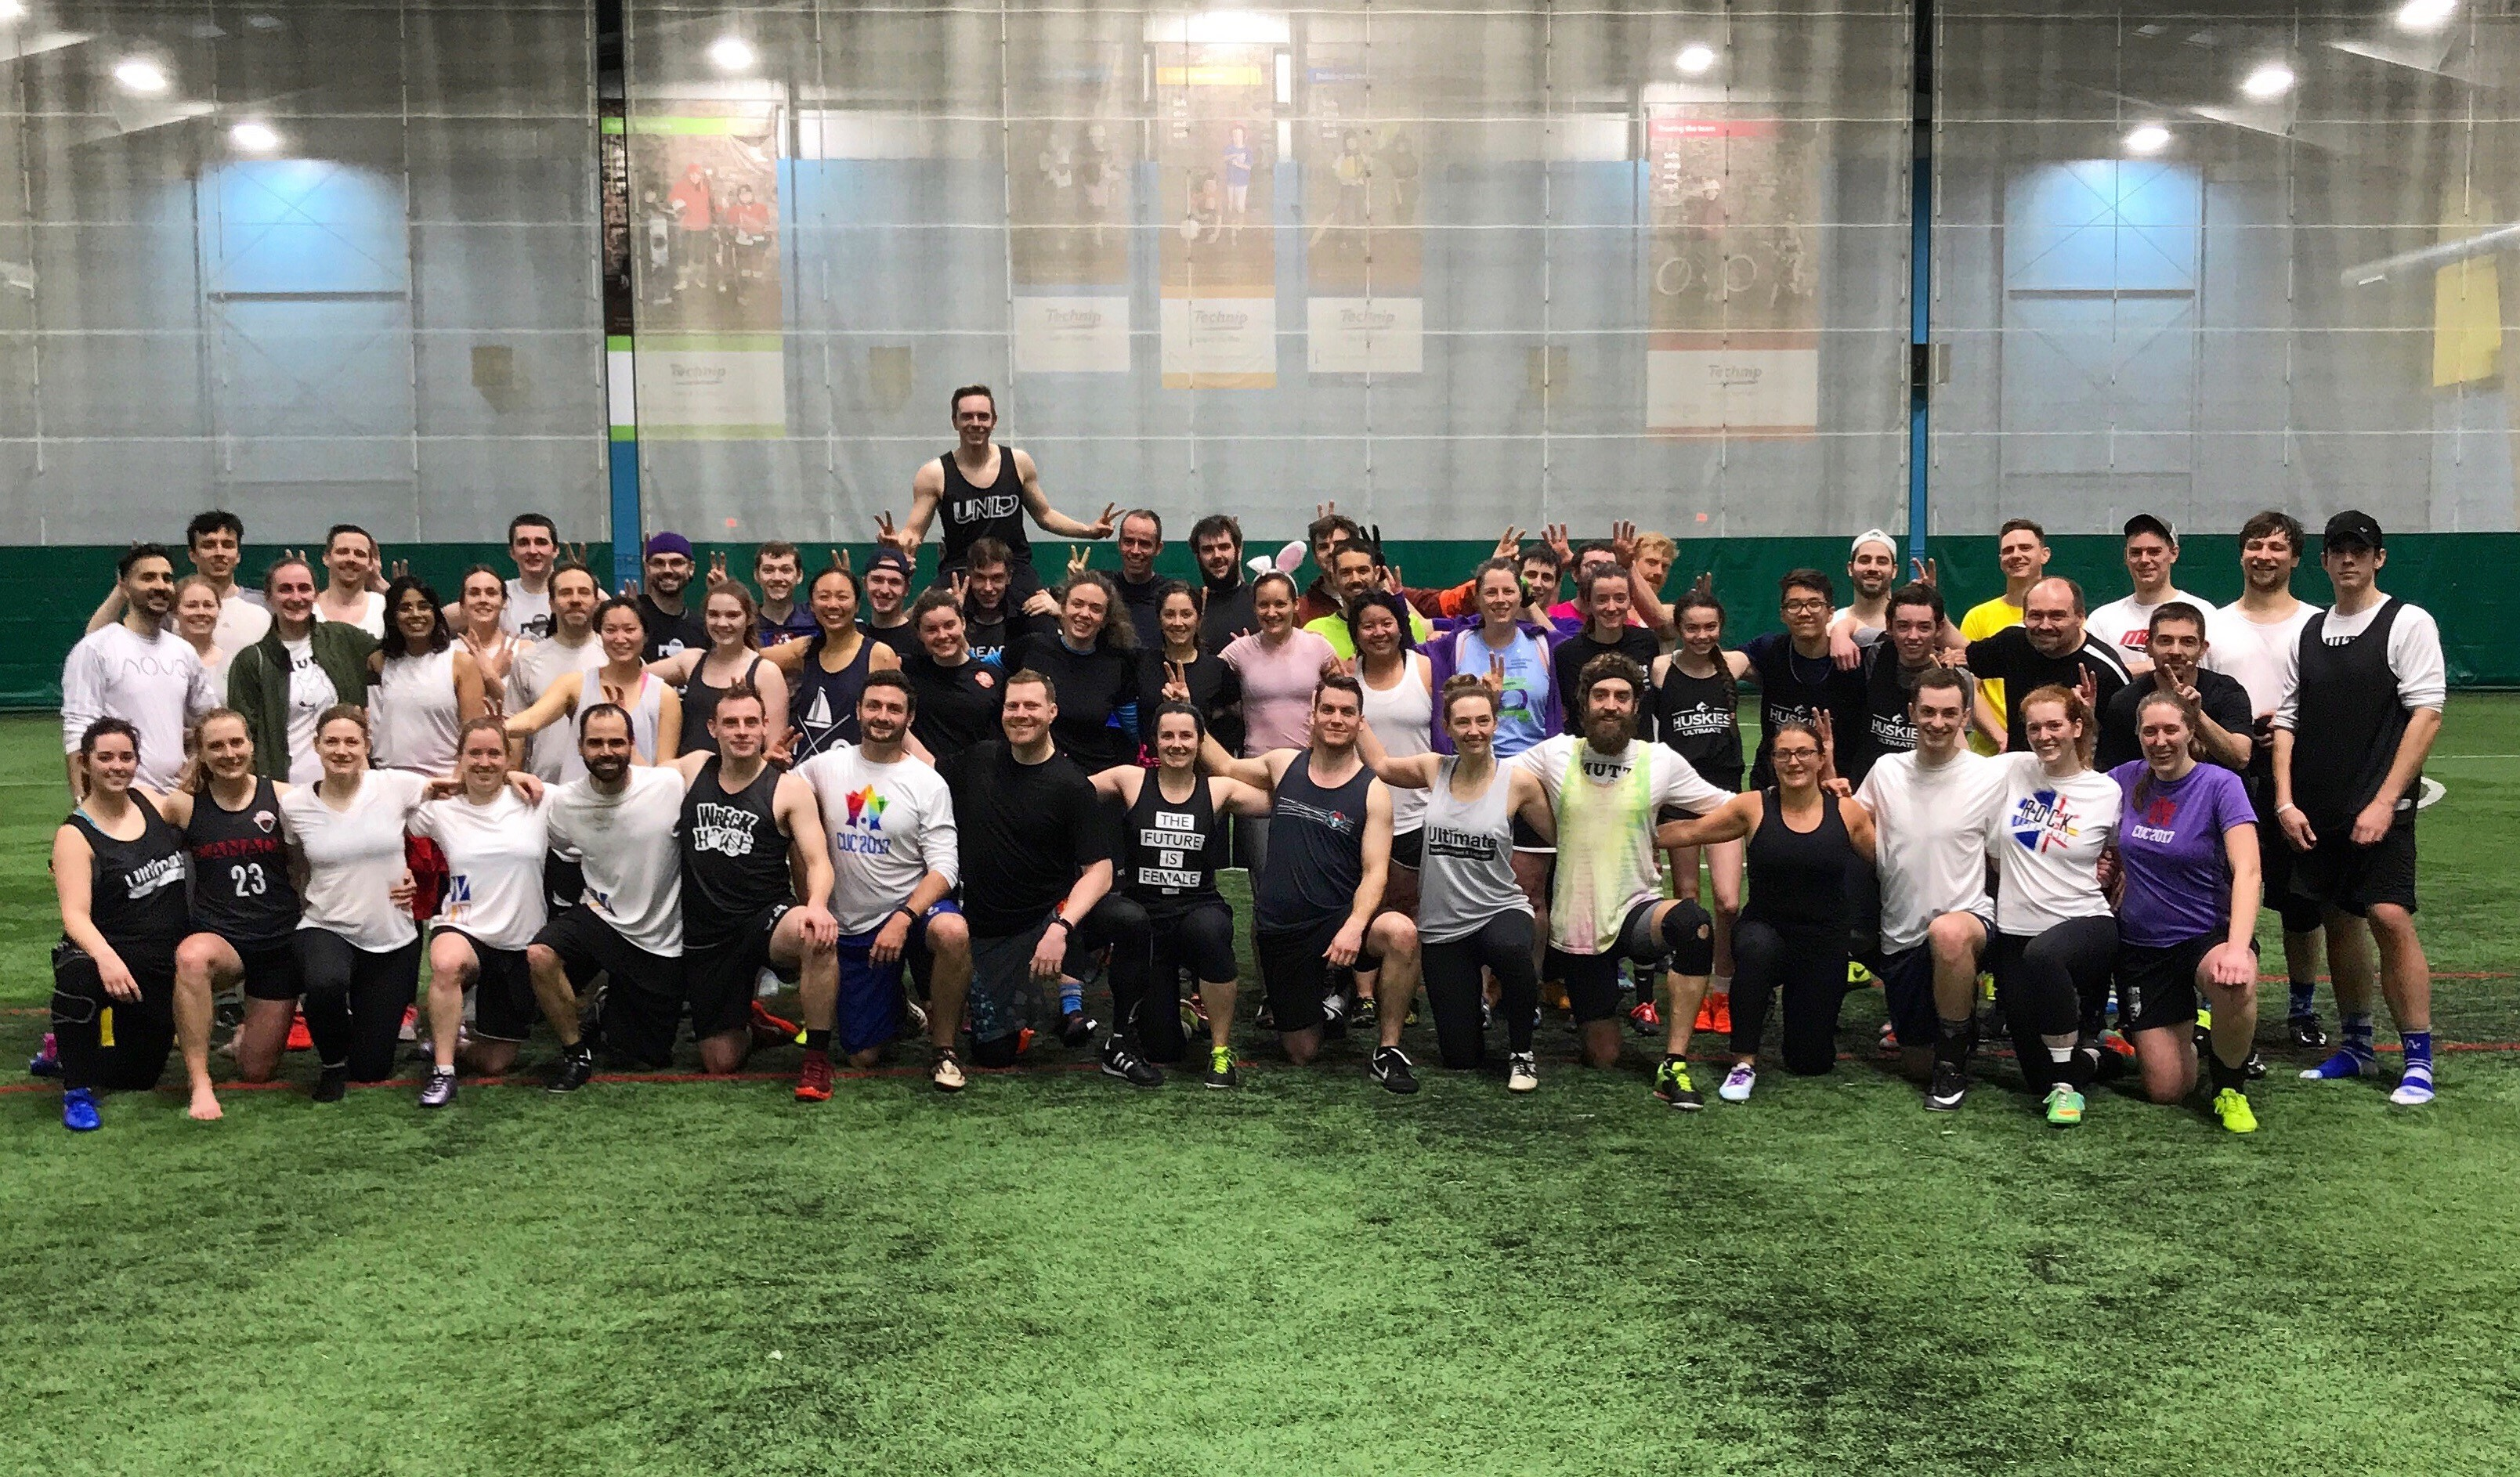 Participants in Ultimate NL's first 4-on-4 tournament.